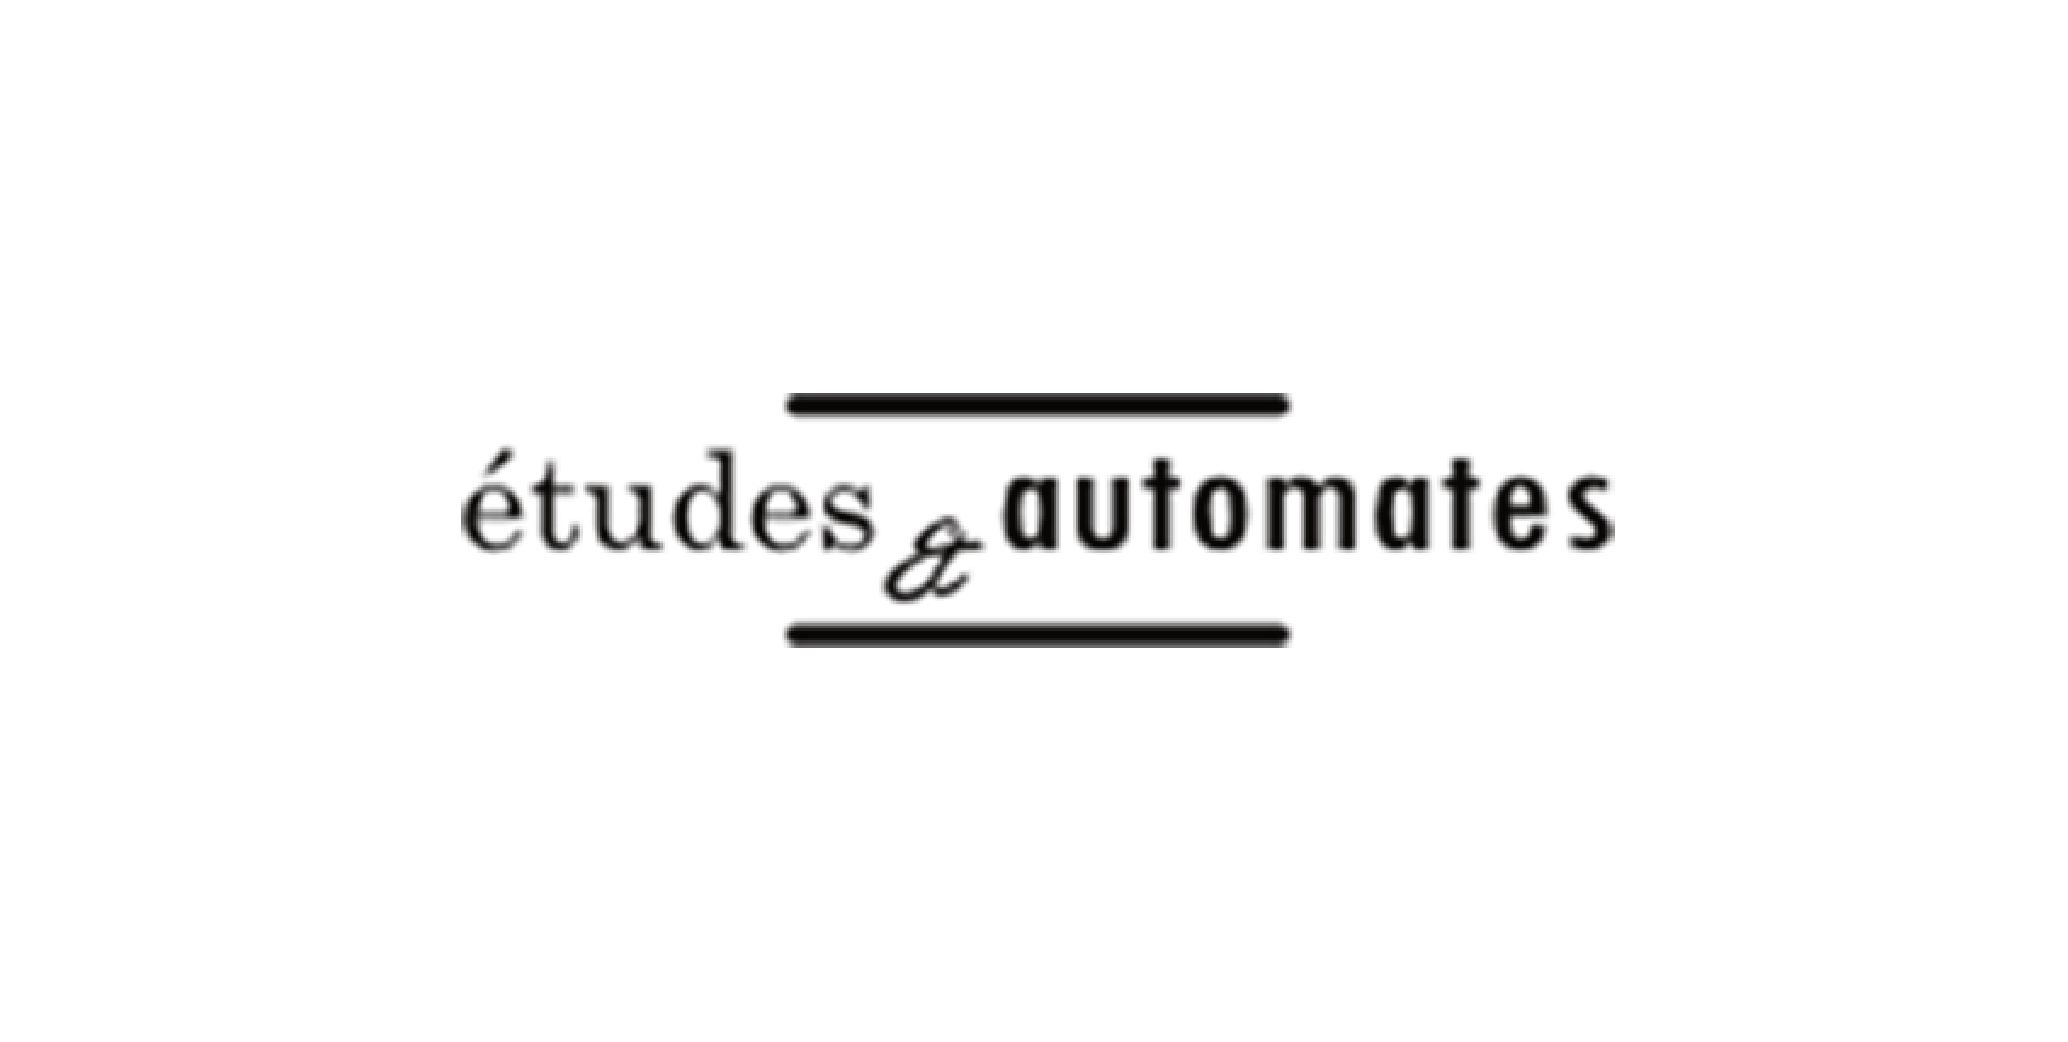 Start up logo etudes&automates